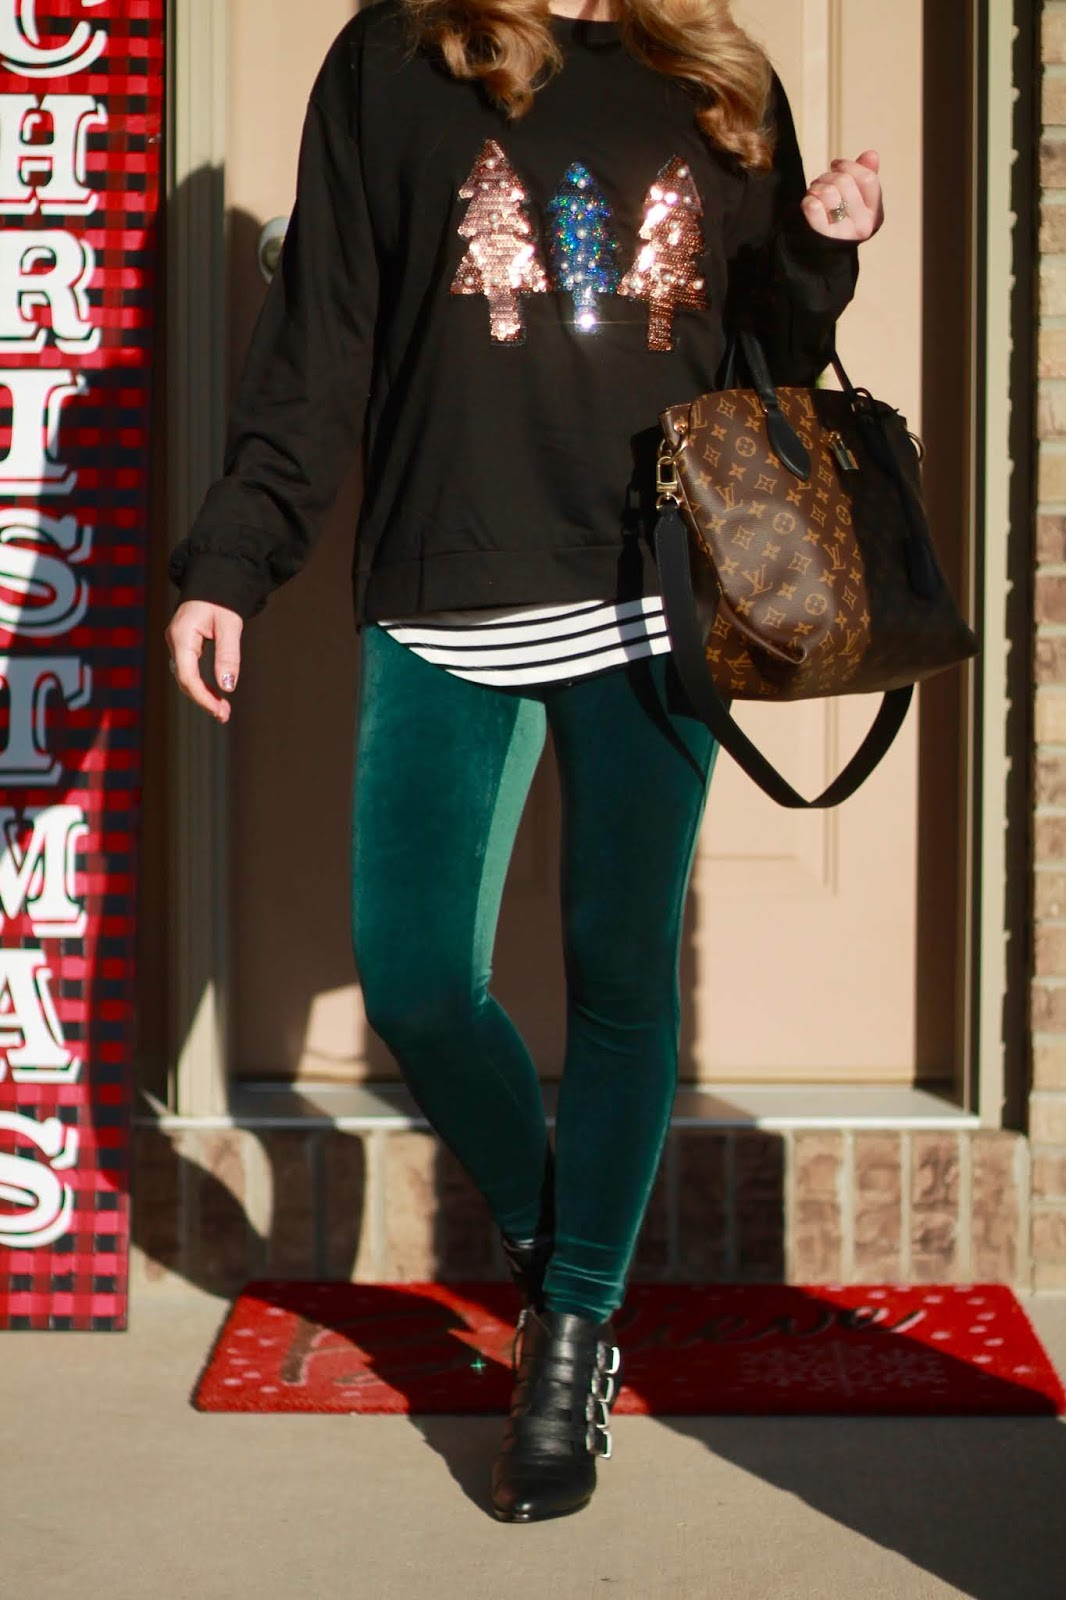 spanx velvet leggings, LV flowered tote, black sequin christmas tree sweatshirt, striped tee, black buckled ankle booties